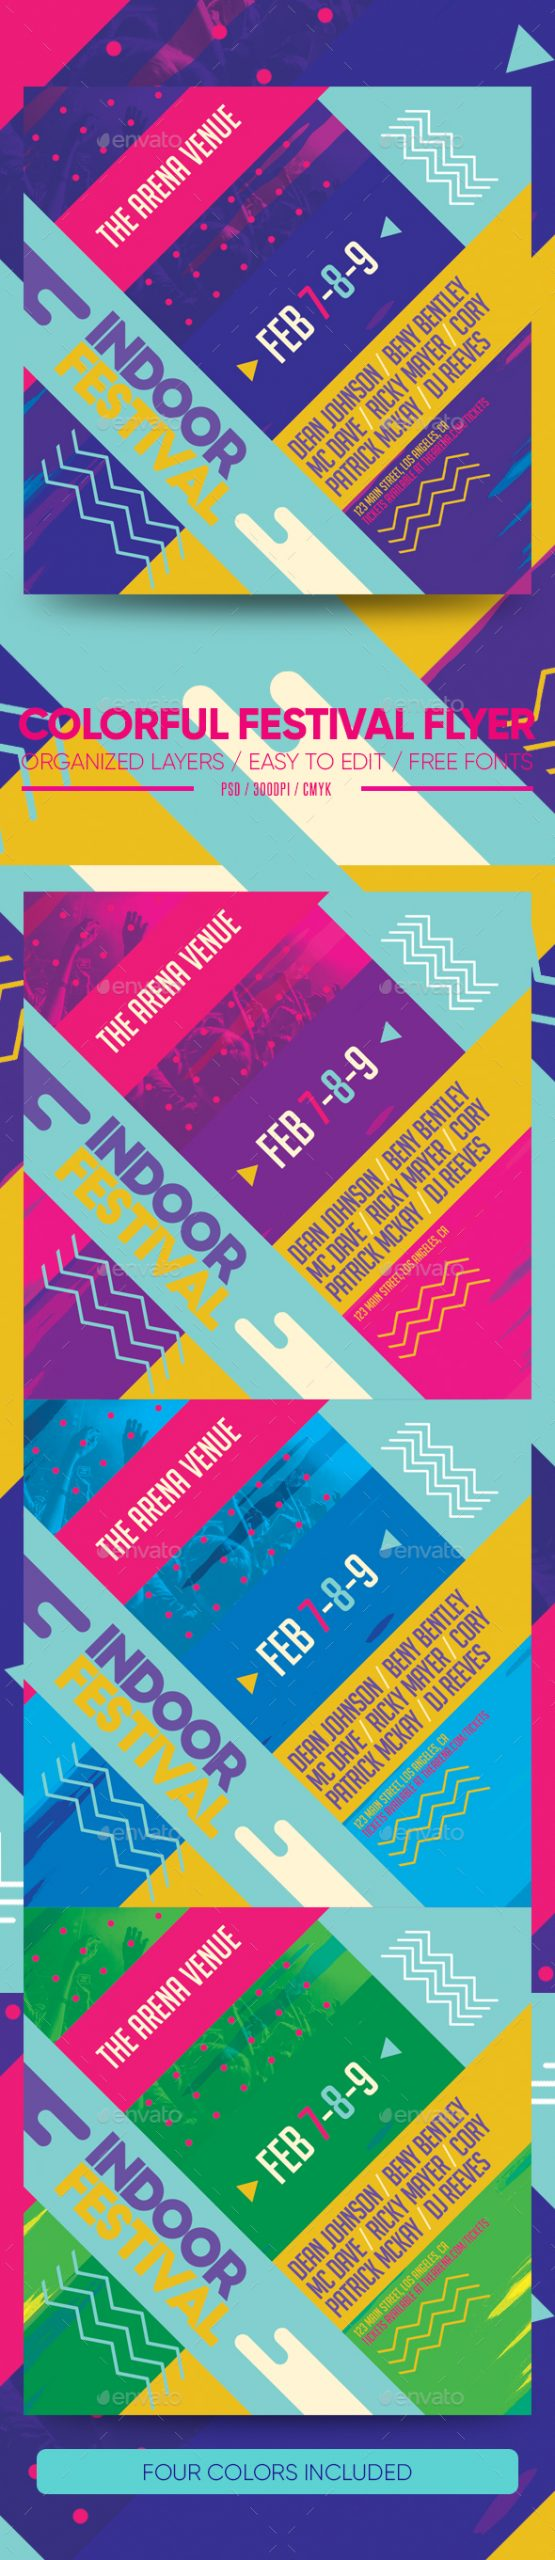 Flyers PSD – Colourful Festival Flyer  – Download